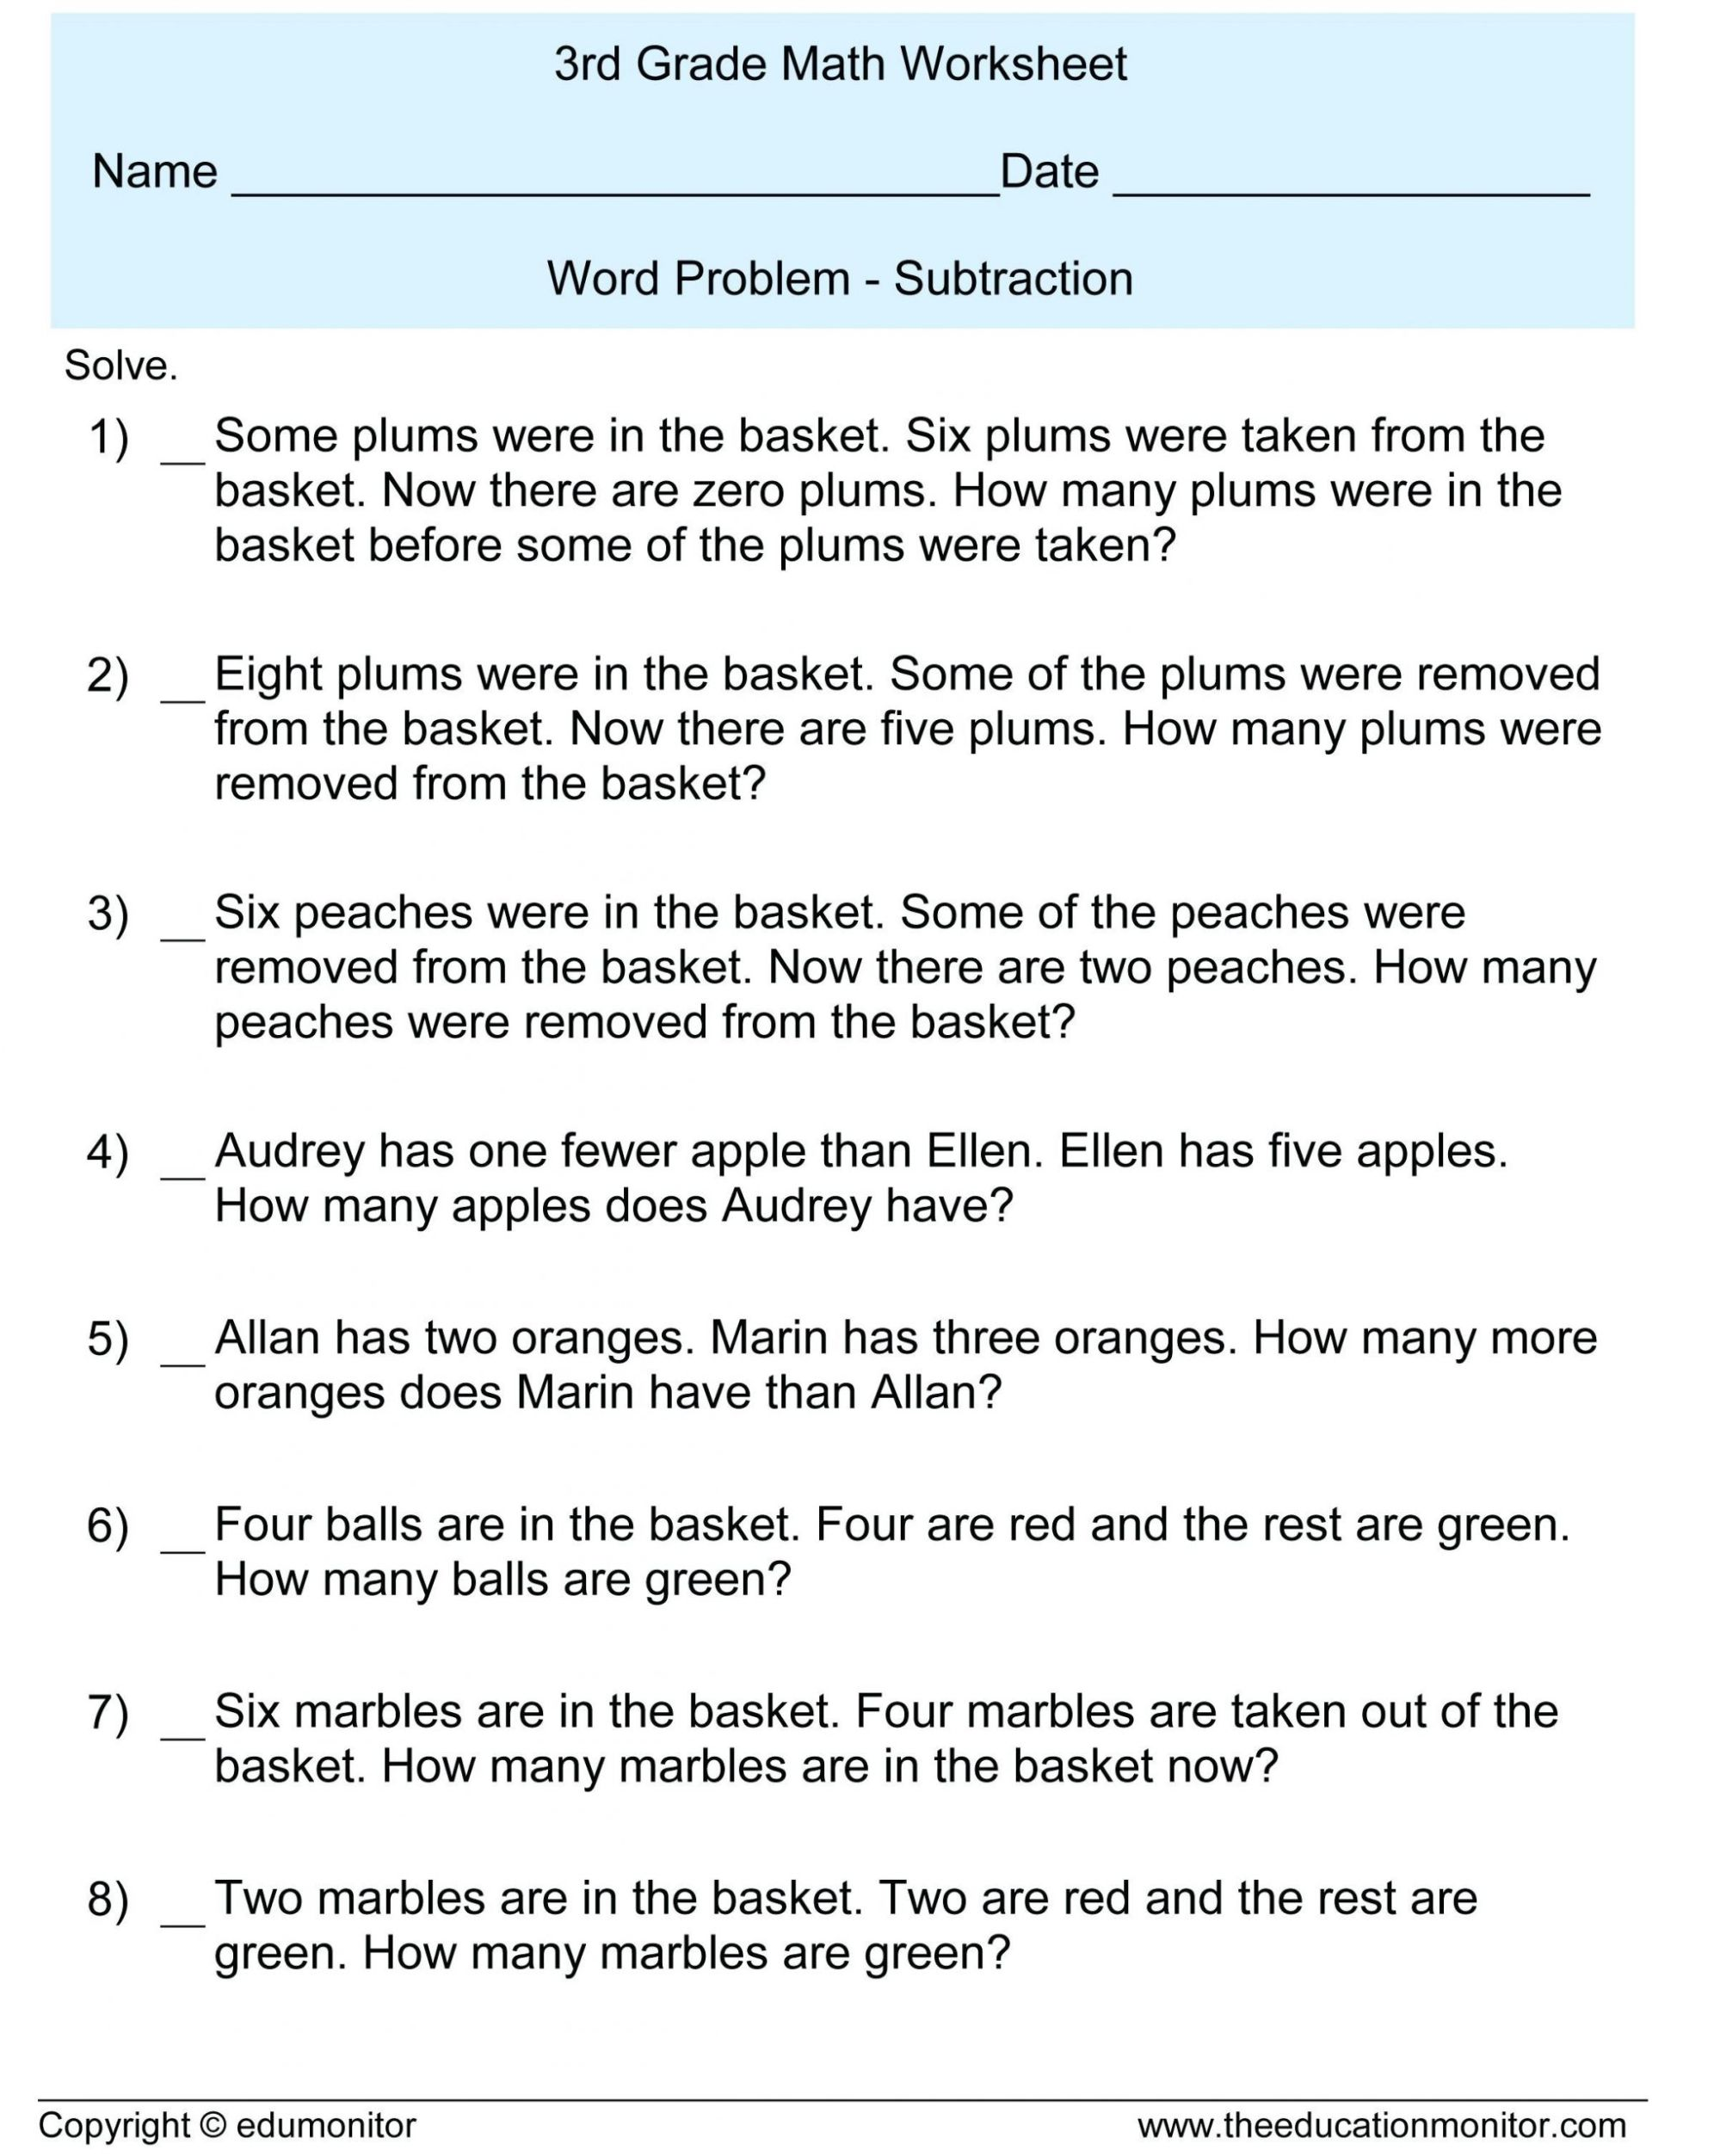 hight resolution of 3 Free Math Worksheets Third Grade 3 Fractions and Decimals Subtracting  Fractions From Mixed Numbers - apocalomegaproductions.com